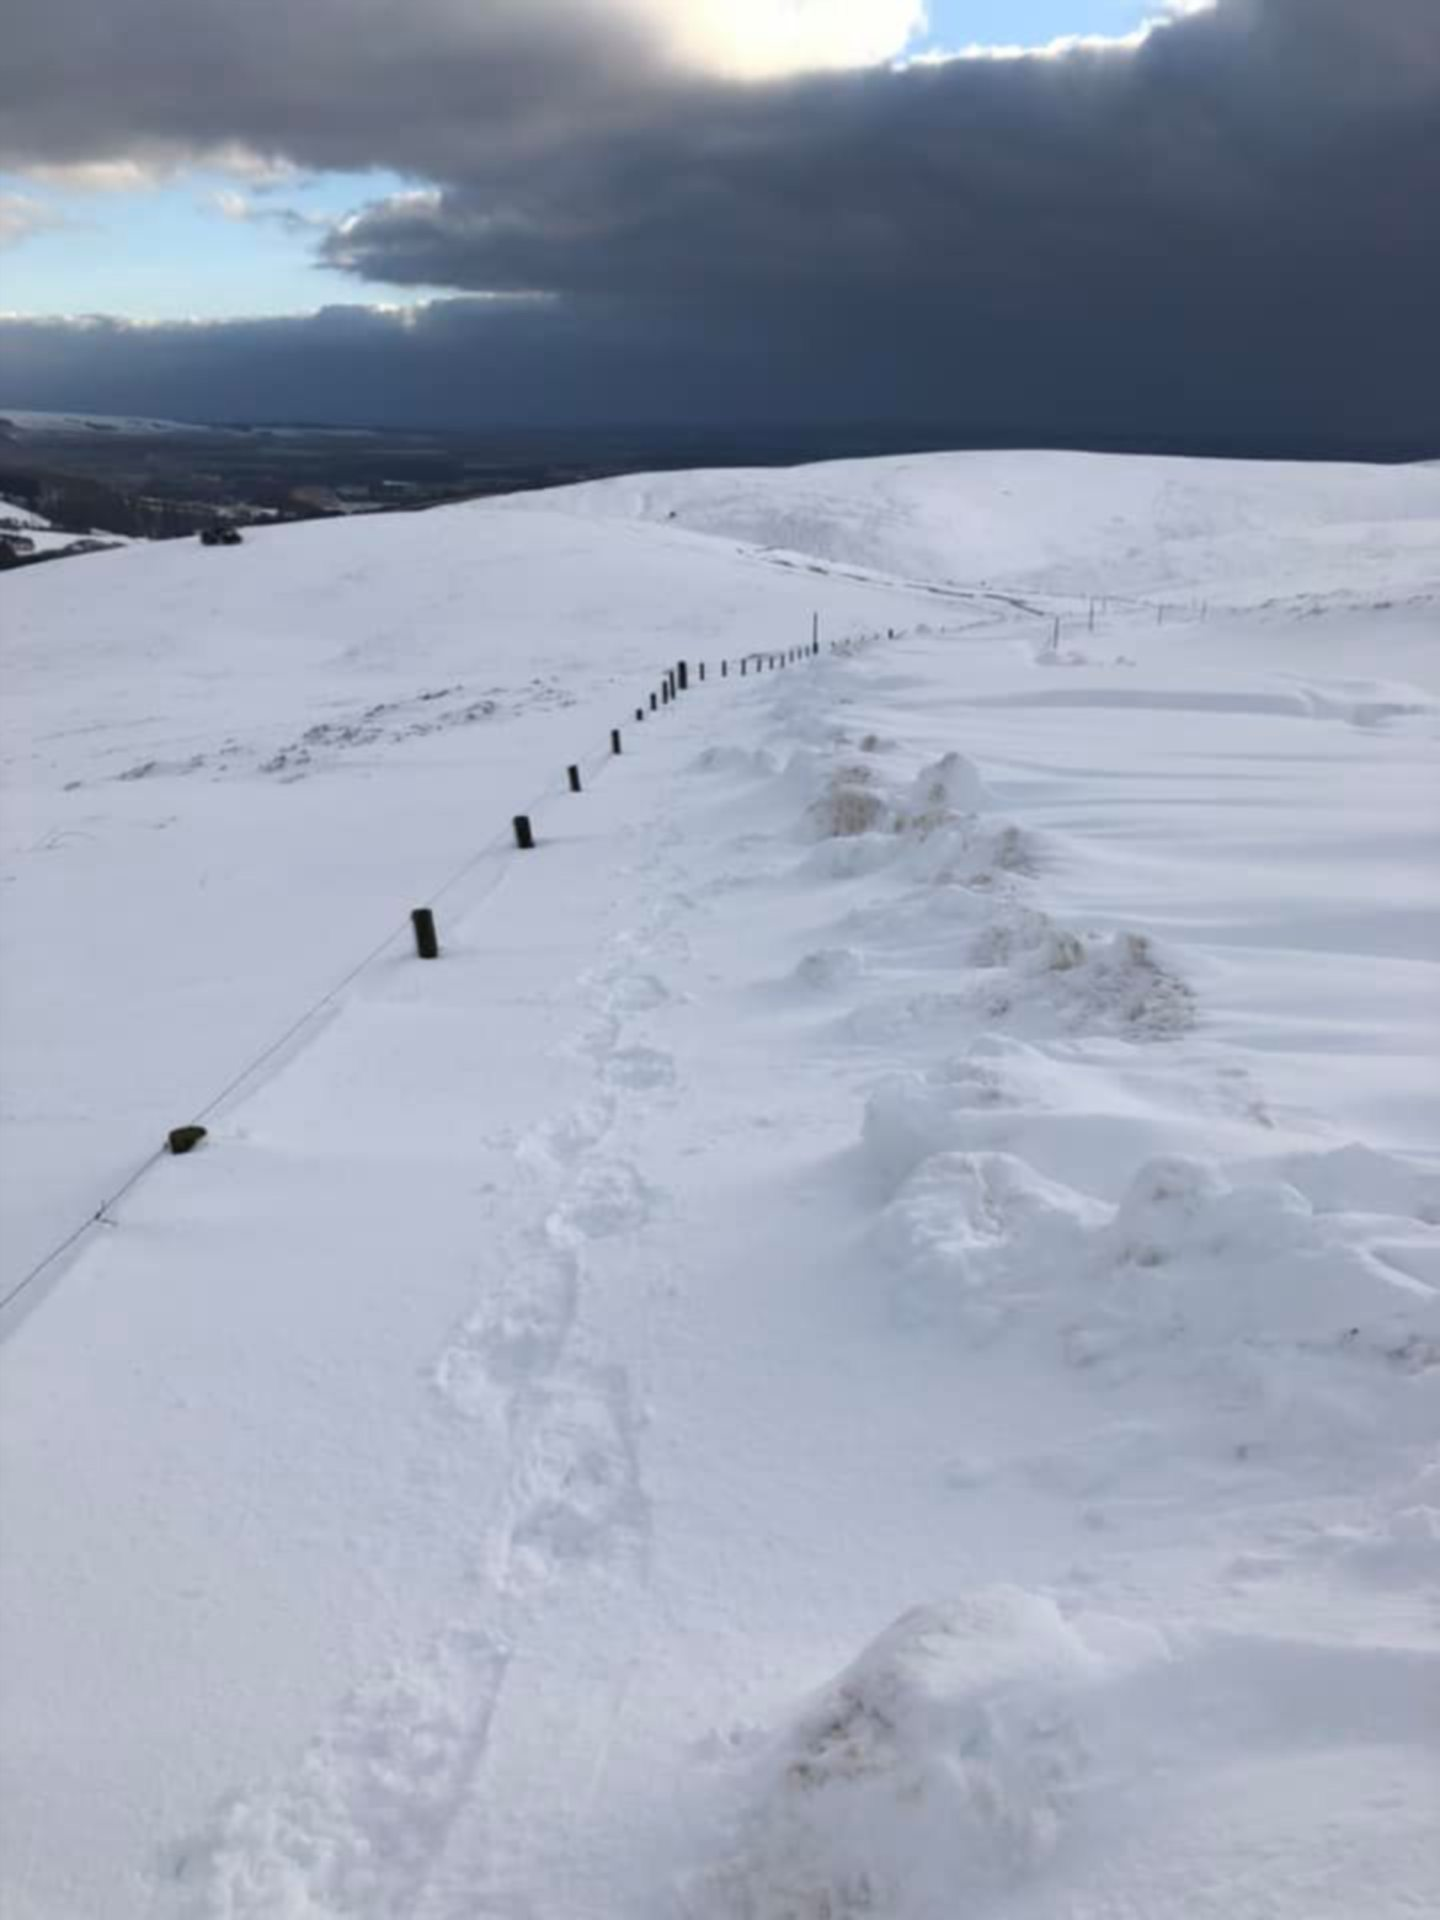 Mearns man Ralph Davidson took these images of the Cairn O' Mount road completely buried under snow.